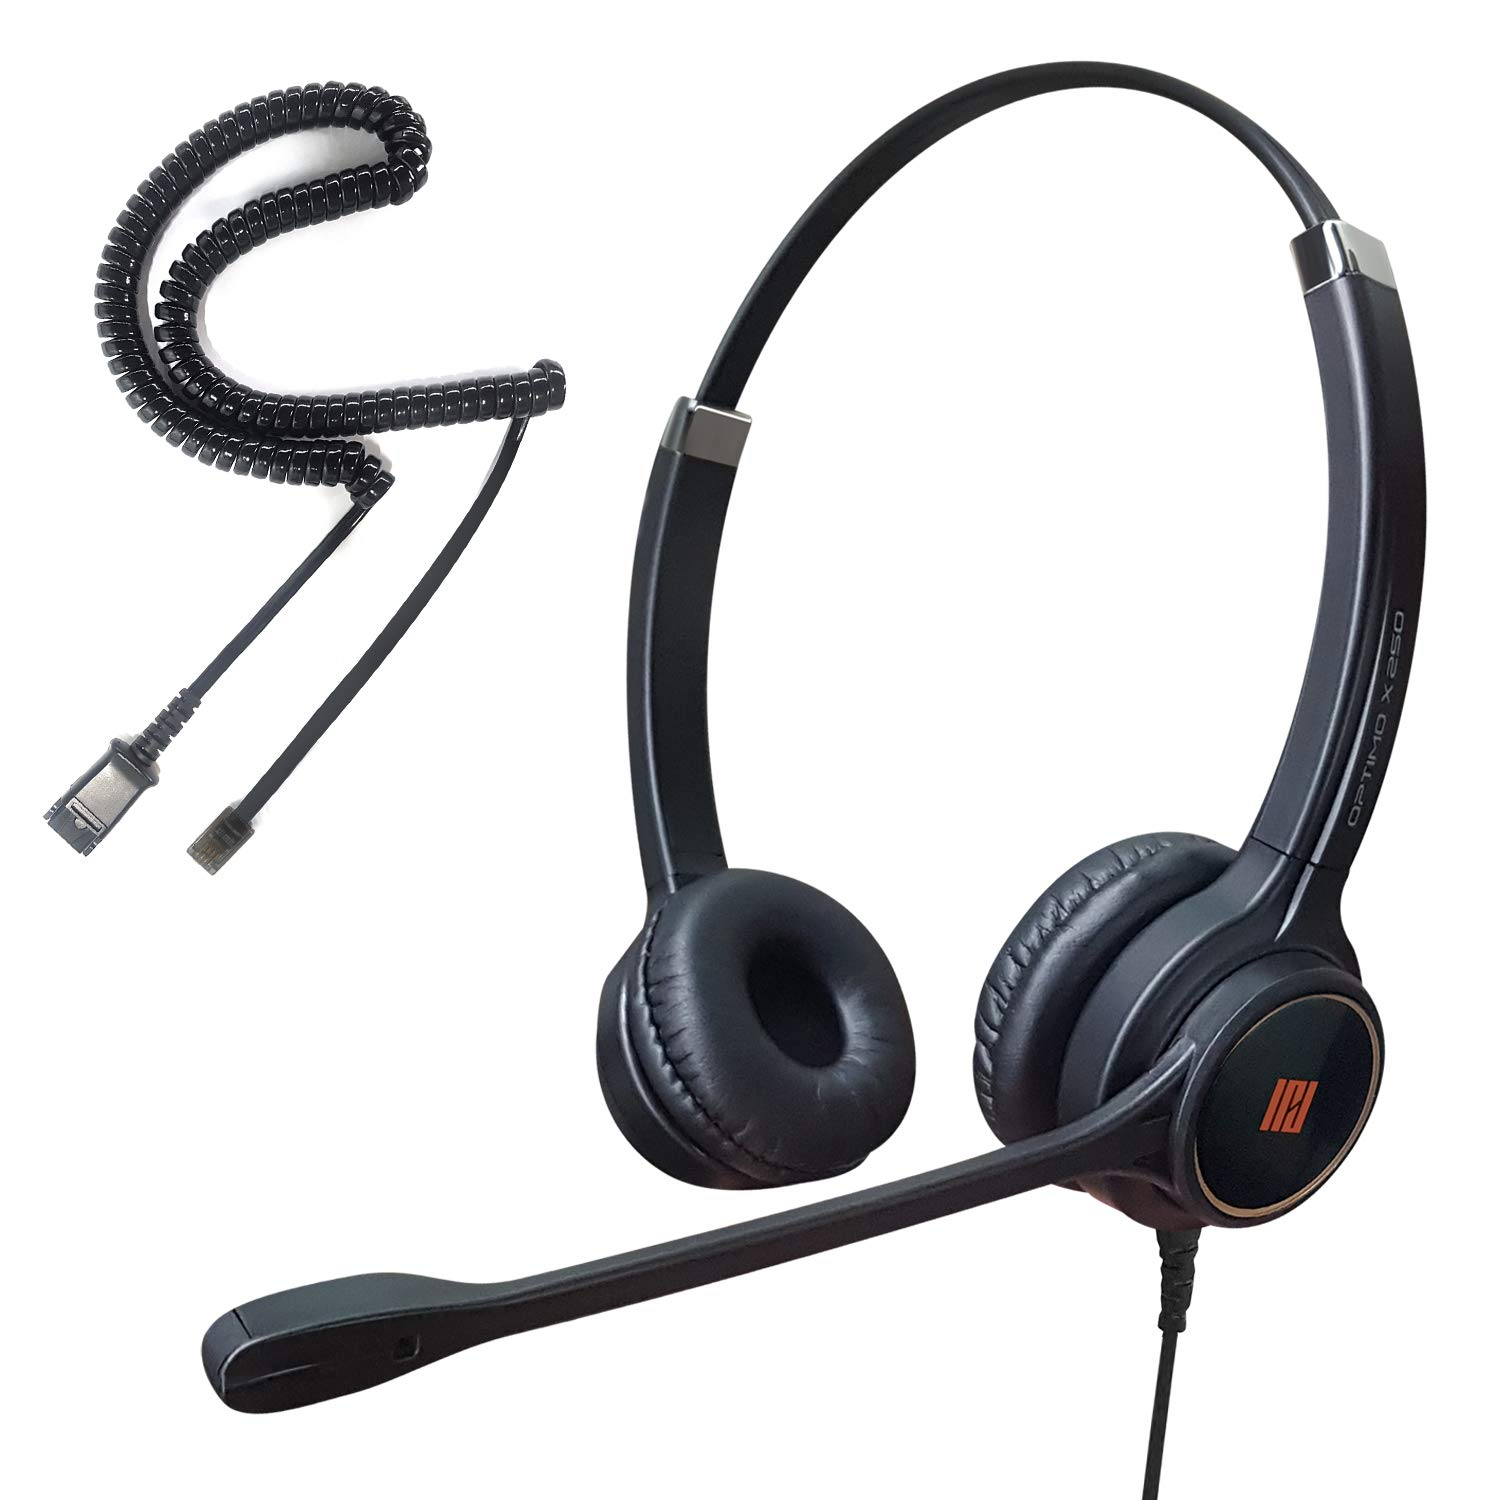 IPD IPH-255 Optimo-X Duo Ear Noise canceling,Corded headset for Call center,Office and Landline phones w U10P bottom cable w RJ9 jack works with Poycom VVX,Avaya,Nortel, Mitel and many other IP phones by IPD